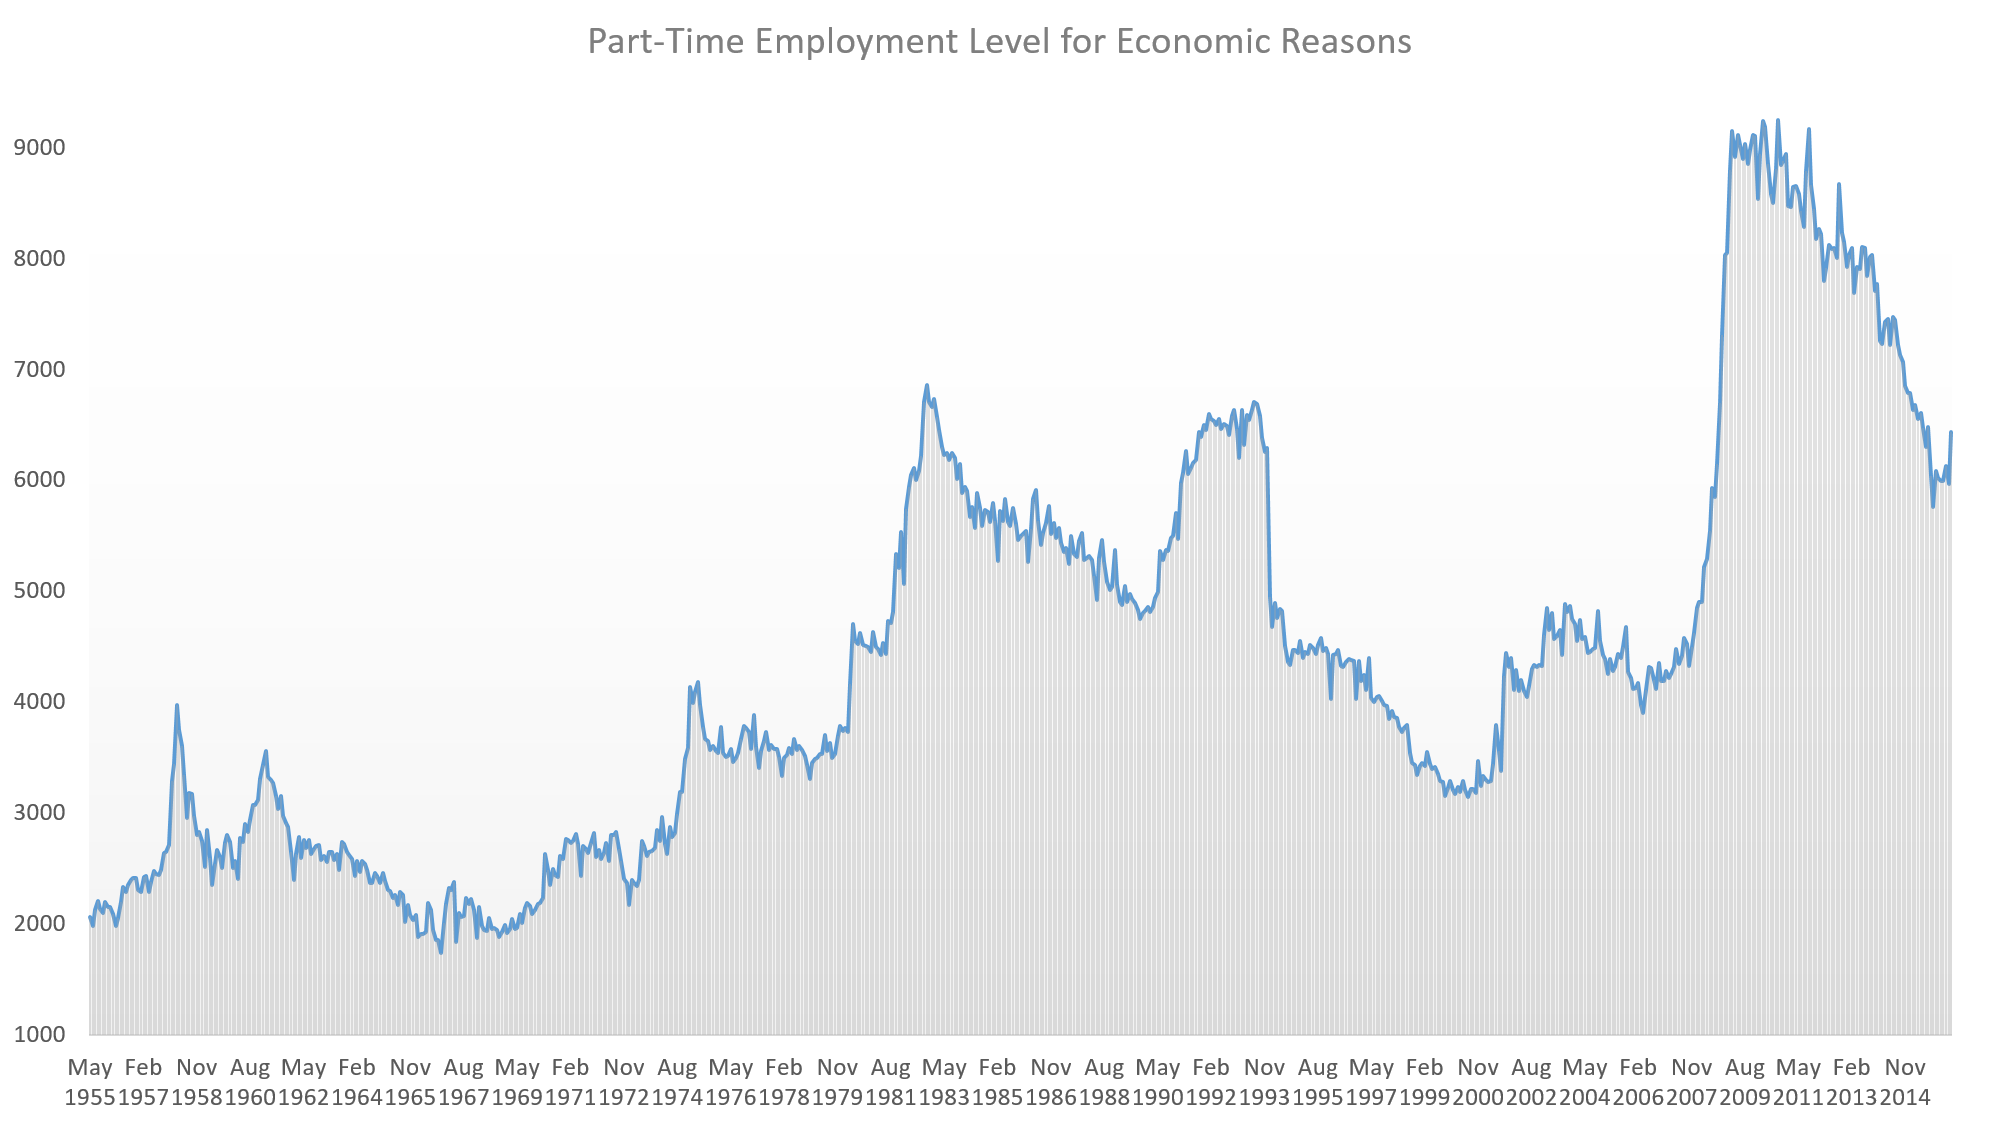 Part-Time Employment Level for Economic Reasons